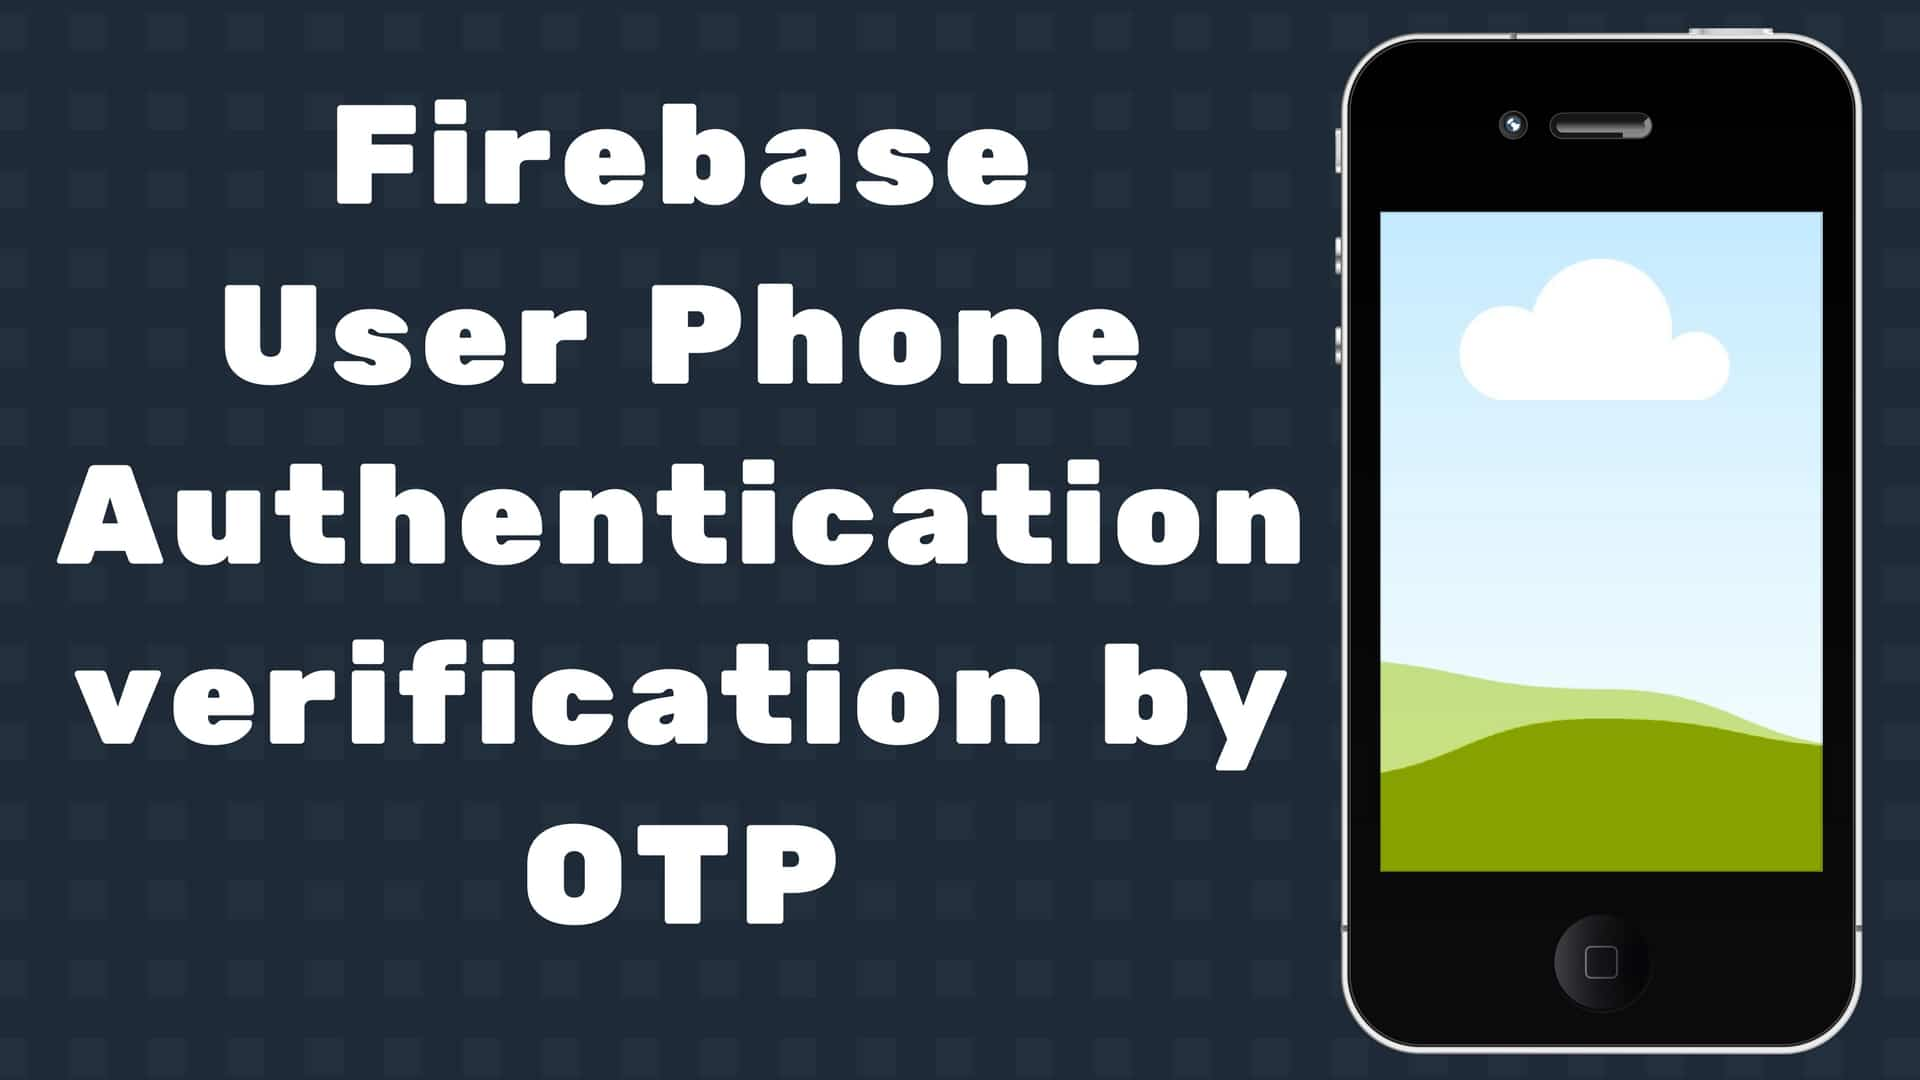 Firebase User Phone Authentication verification by otp in